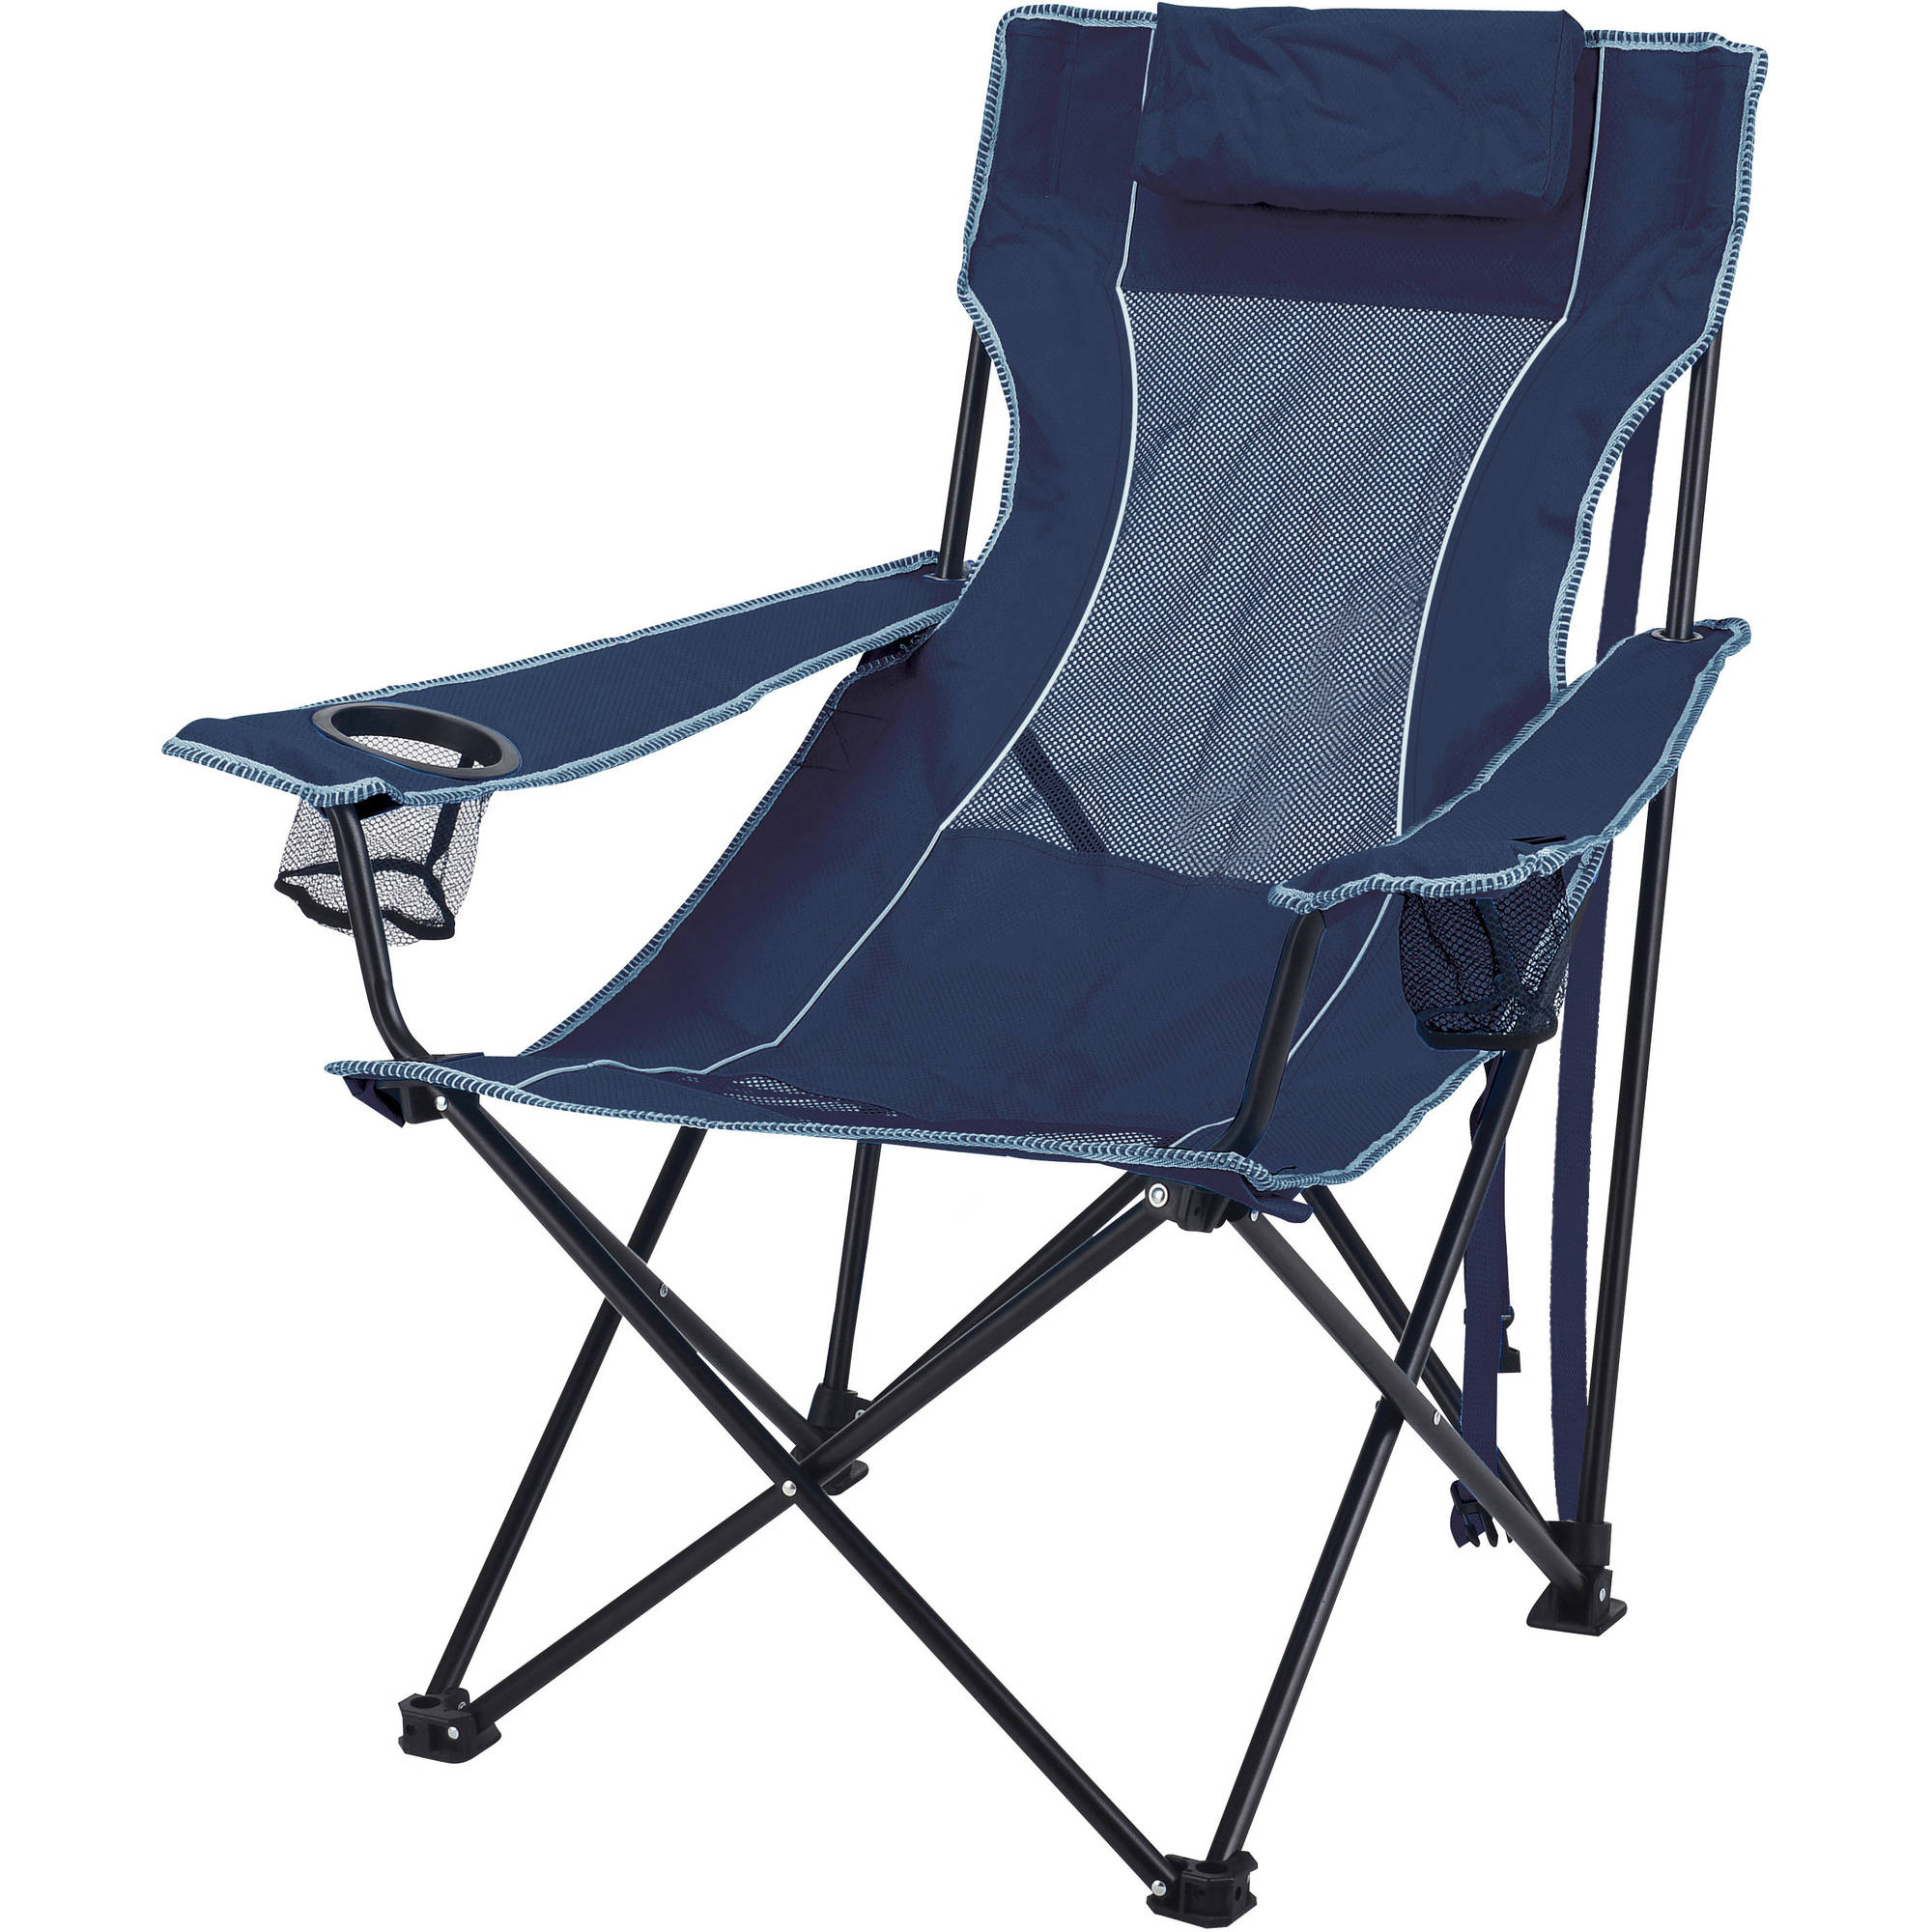 Ozark Trail Oversized Mesh Lounge Camping Chair with Cup Holders